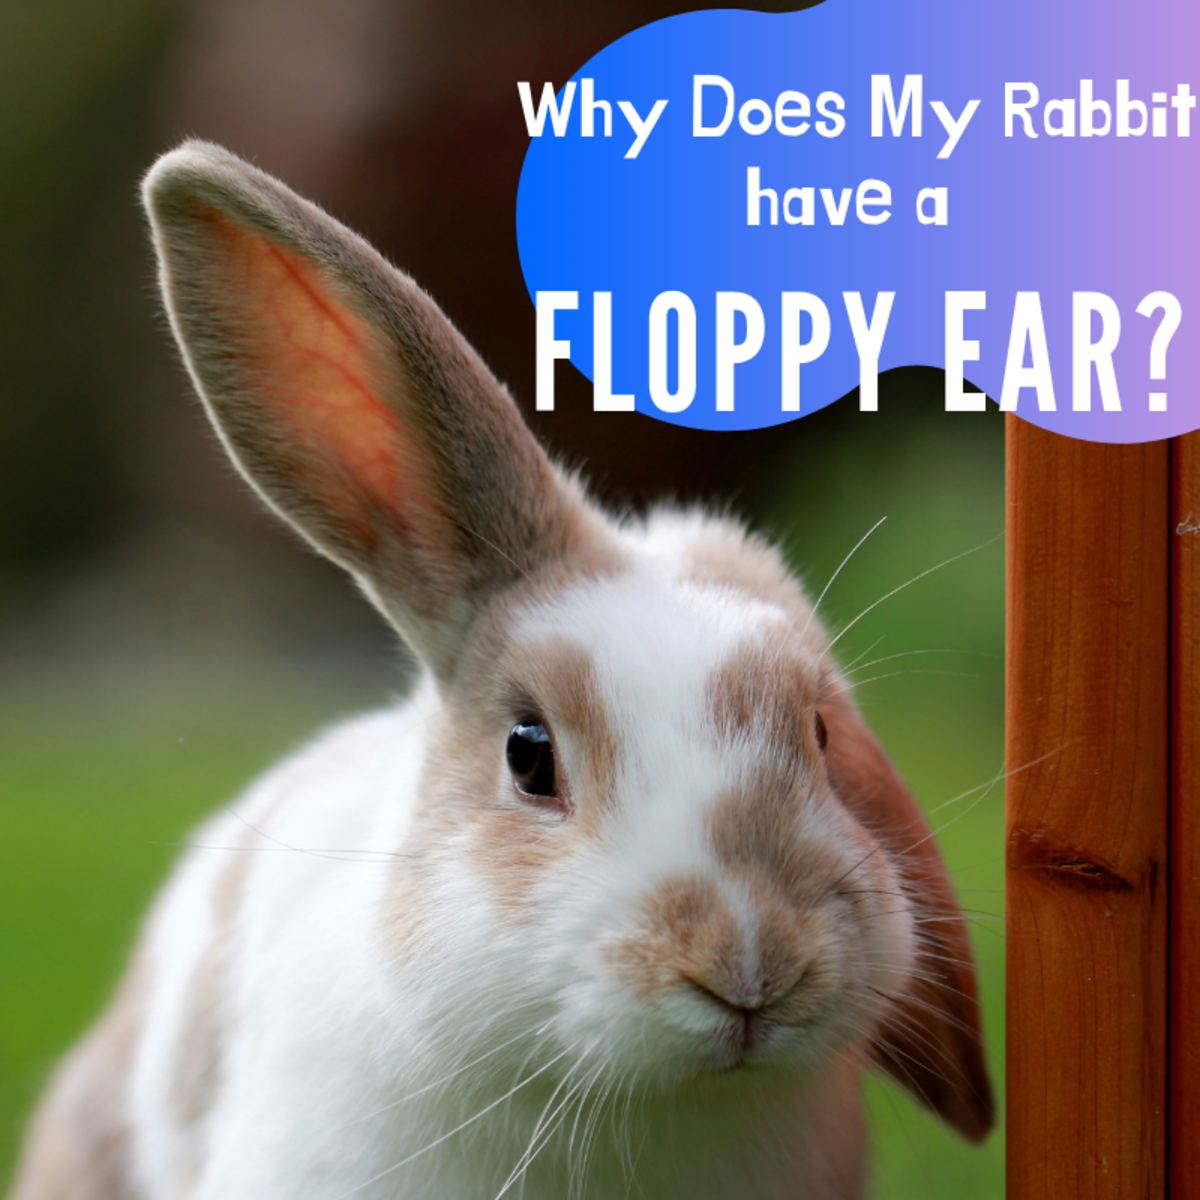 Why do some rabbits' ears remain upright throughout their lives while others' suddenly flop?